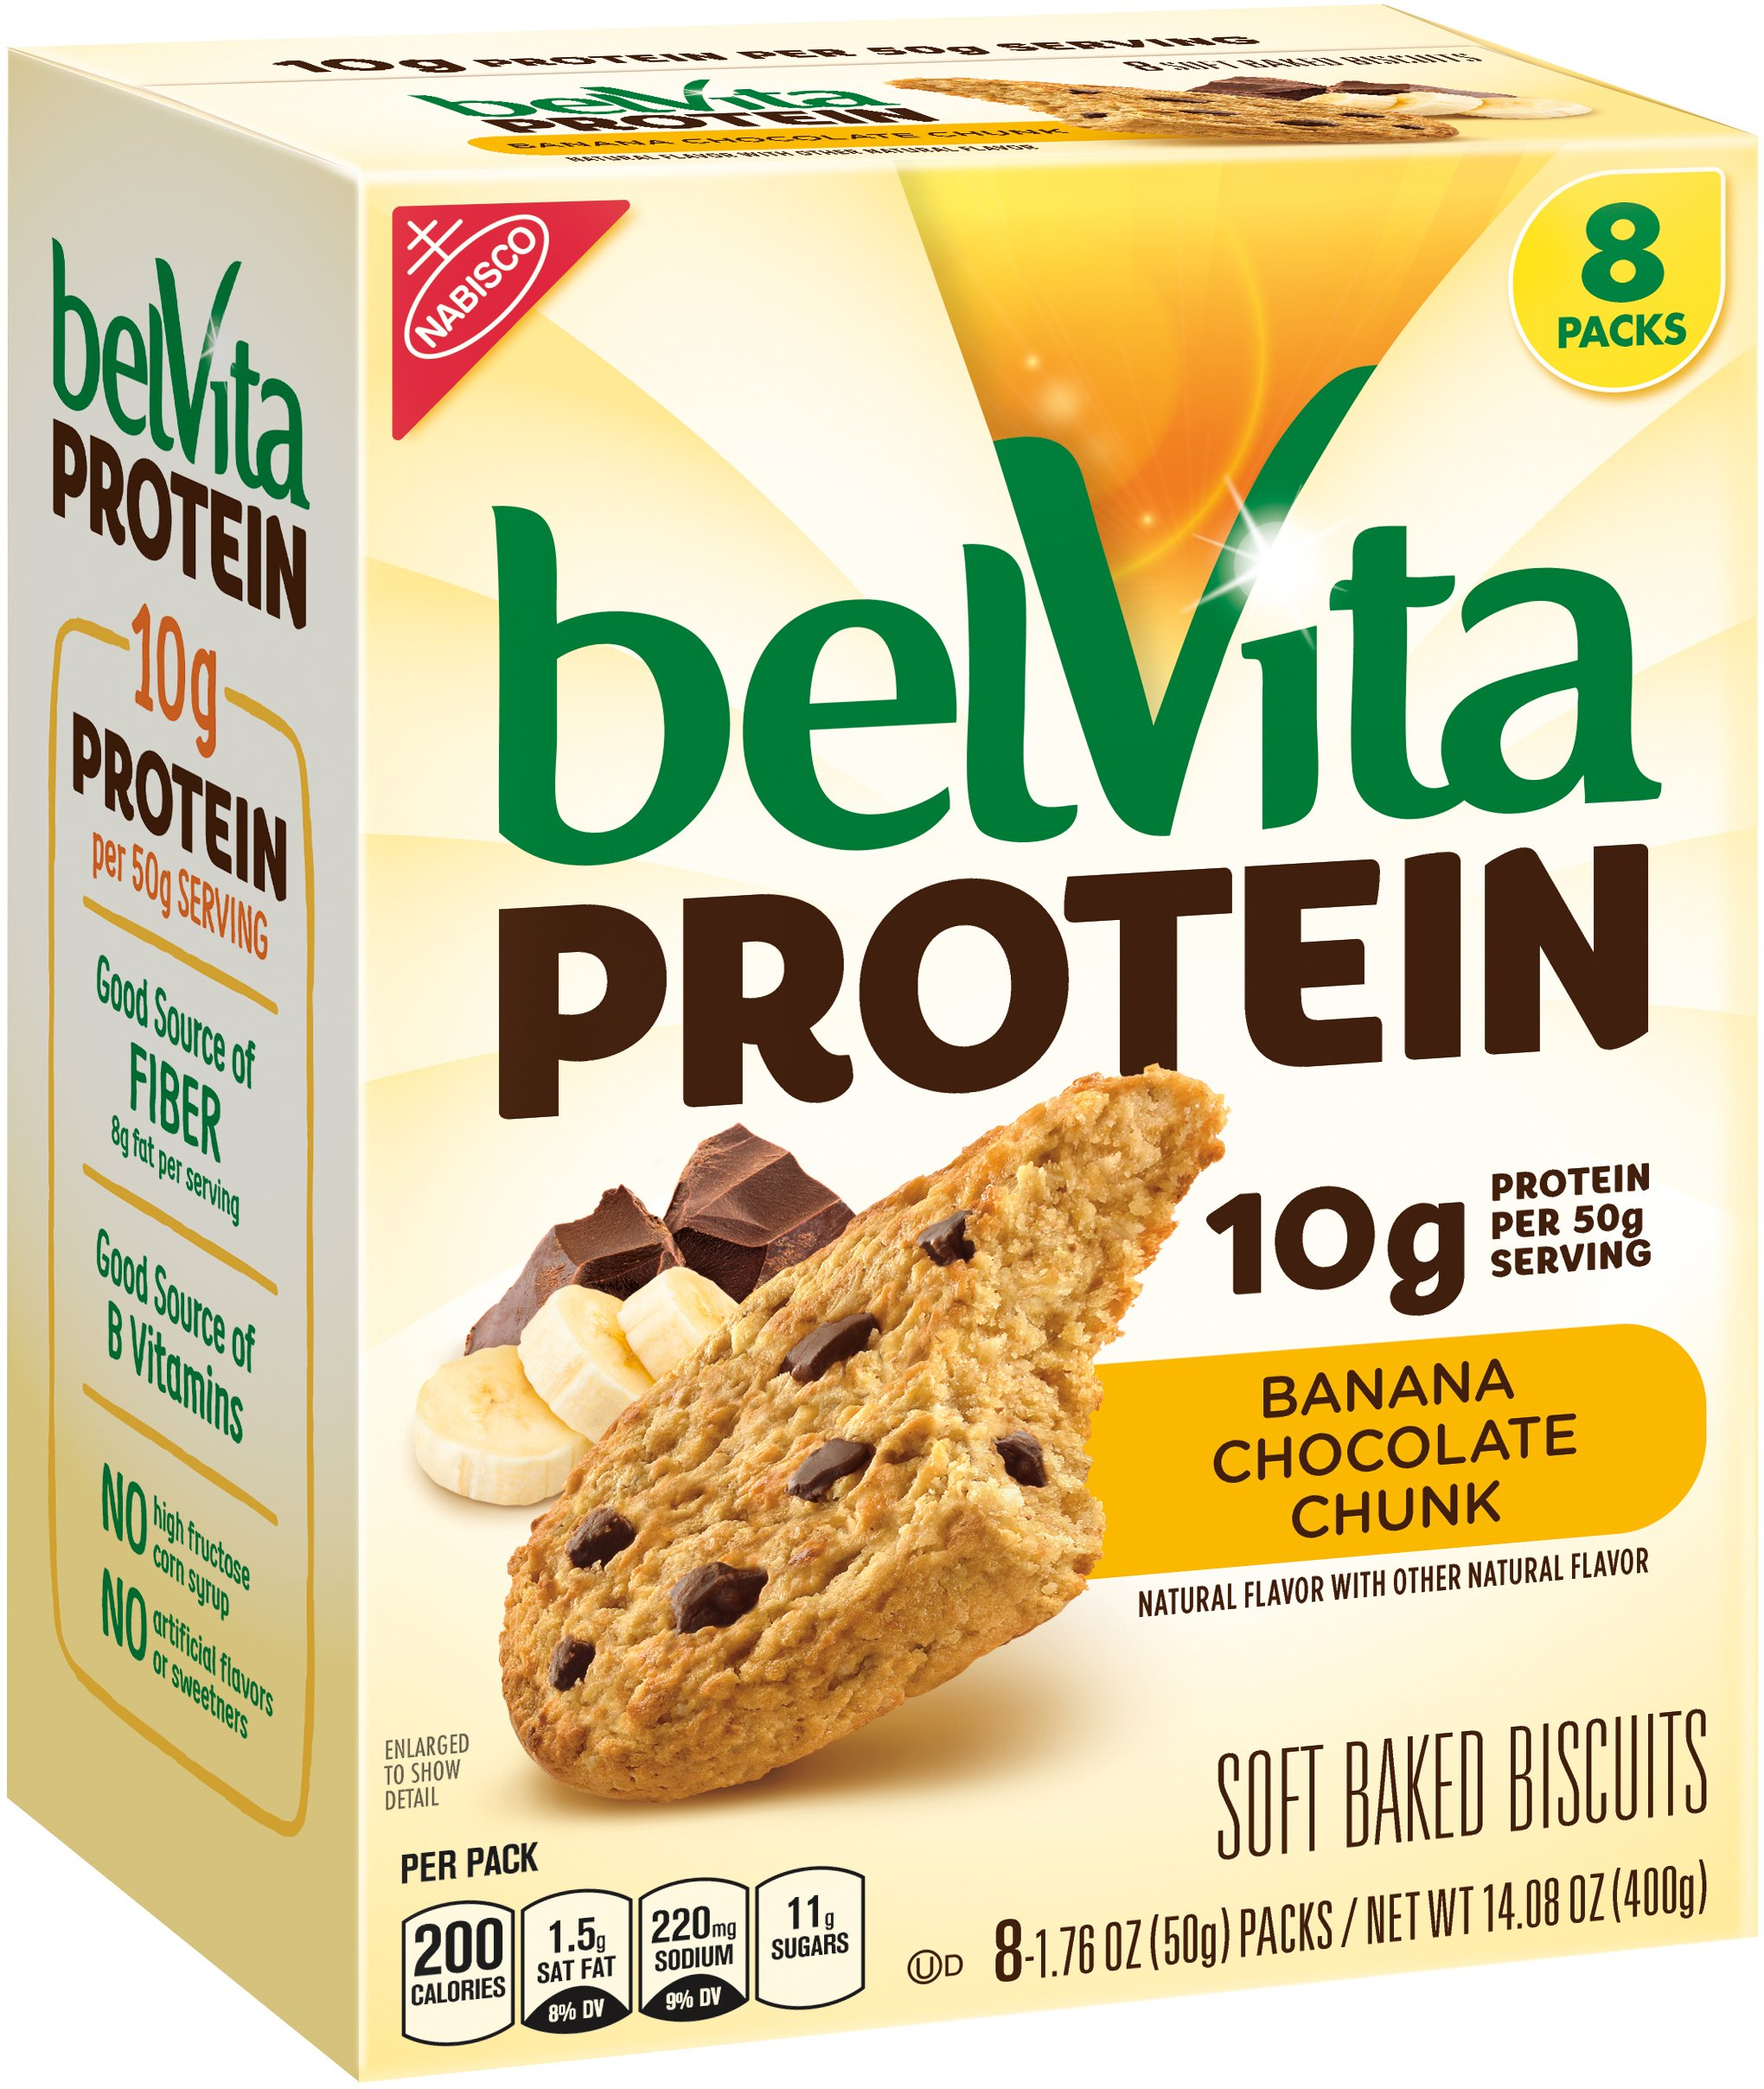 Belvita Protein Banana Chocolate Chunk Biscuits, 14.08 oz